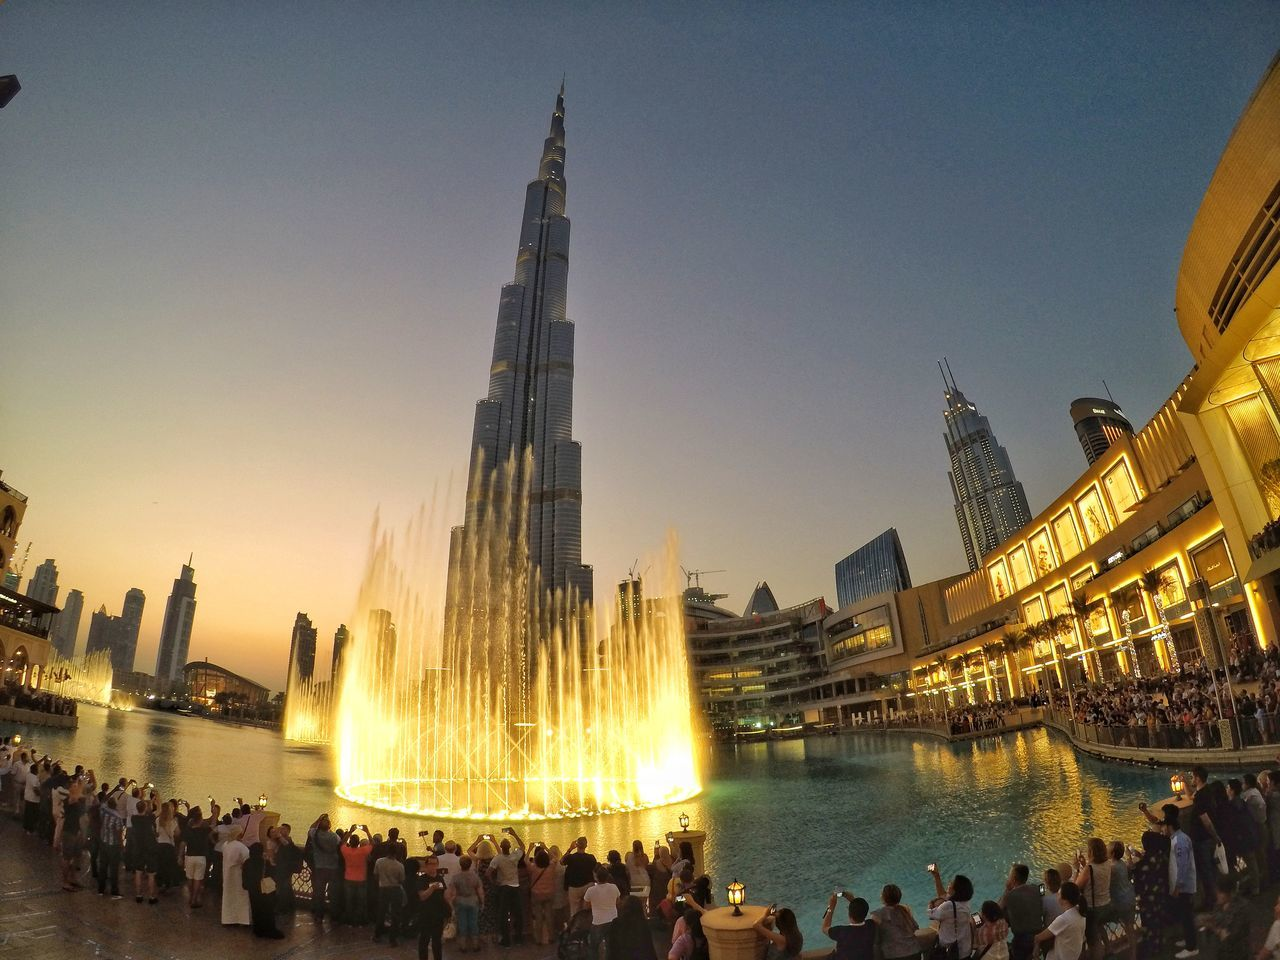 large group of people, real people, built structure, building exterior, architecture, spirituality, tourism, men, women, water, lifestyles, religion, leisure activity, place of worship, travel destinations, illuminated, travel, sky, outdoors, clear sky, crowd, togetherness, city, day, adult, people